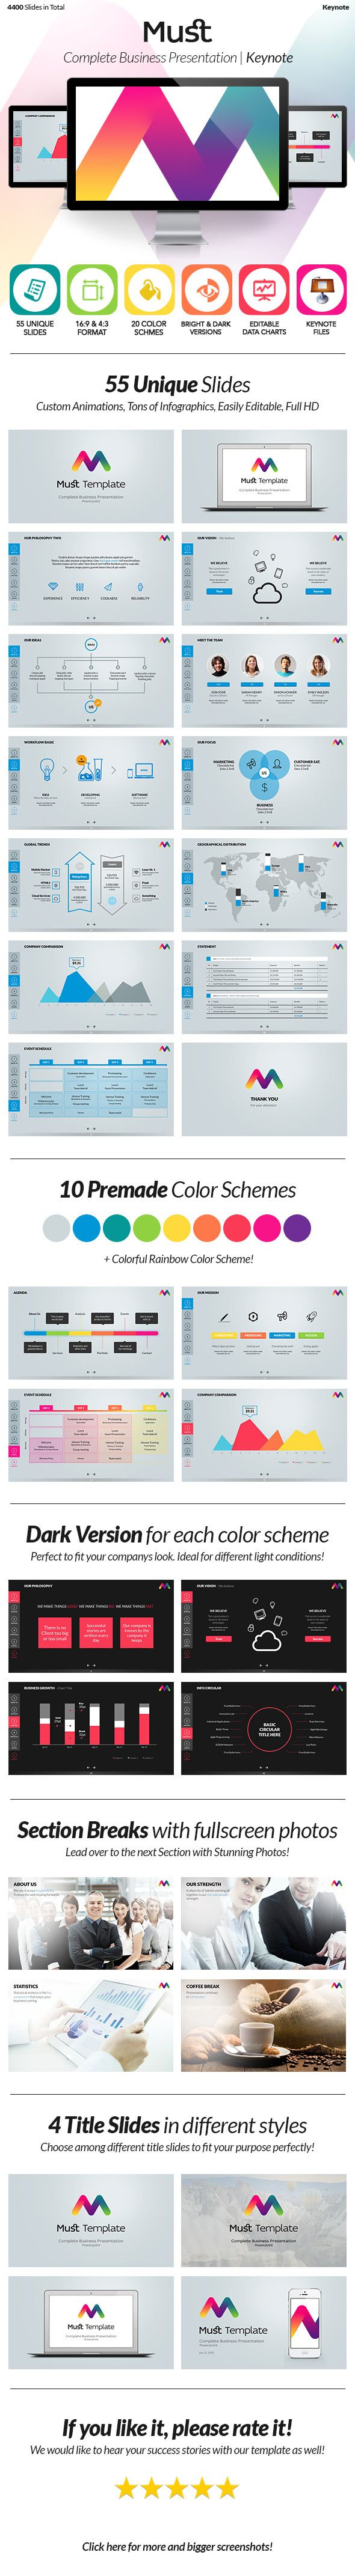 Must Keynote - Complete Business Template  #industry #business • Download ➝ https://graphicriver.net/item/must-keynote-complete-business-template/5890097?ref=pxcr